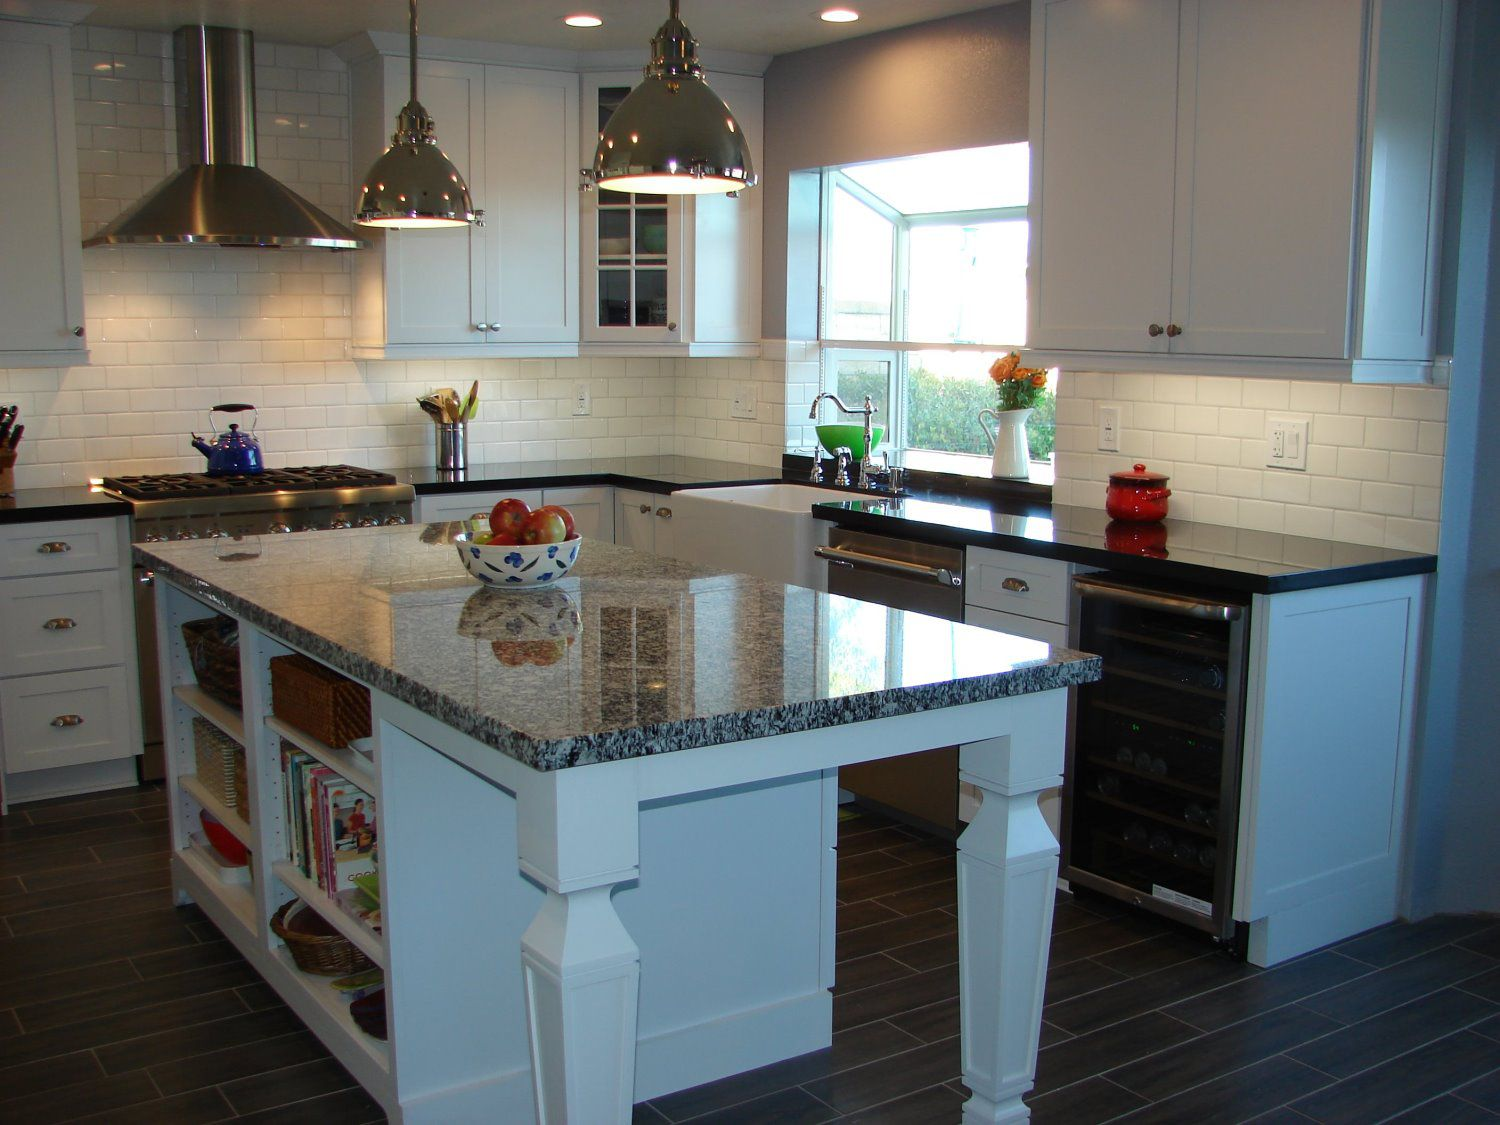 Remodeling | Anew Kitchen Inc